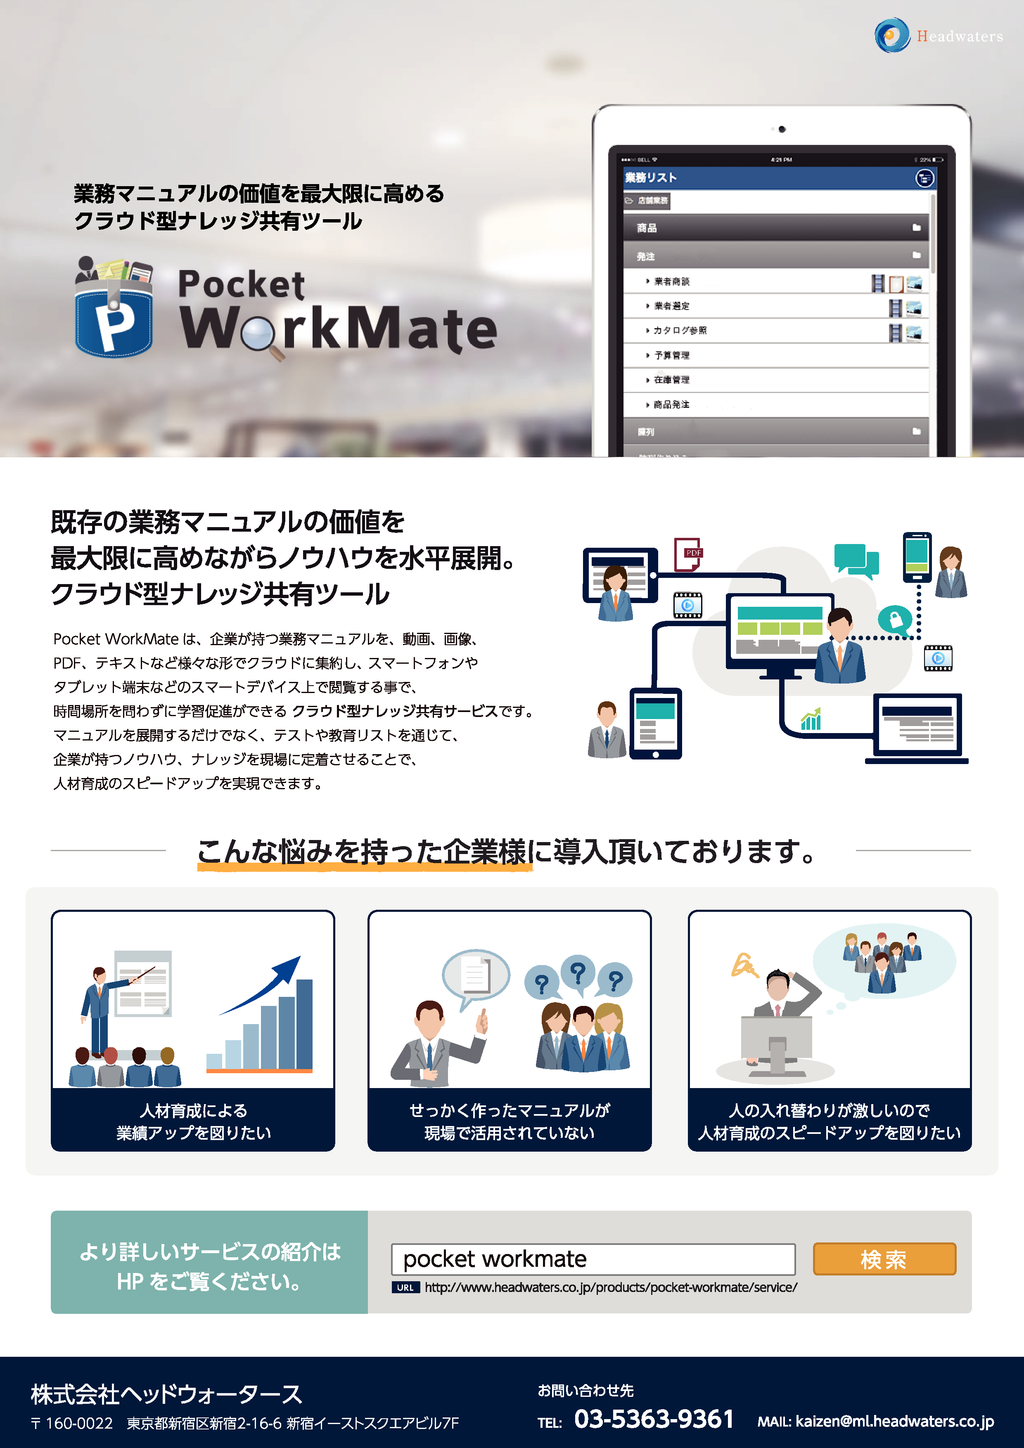 hPocketWorkMateの資料